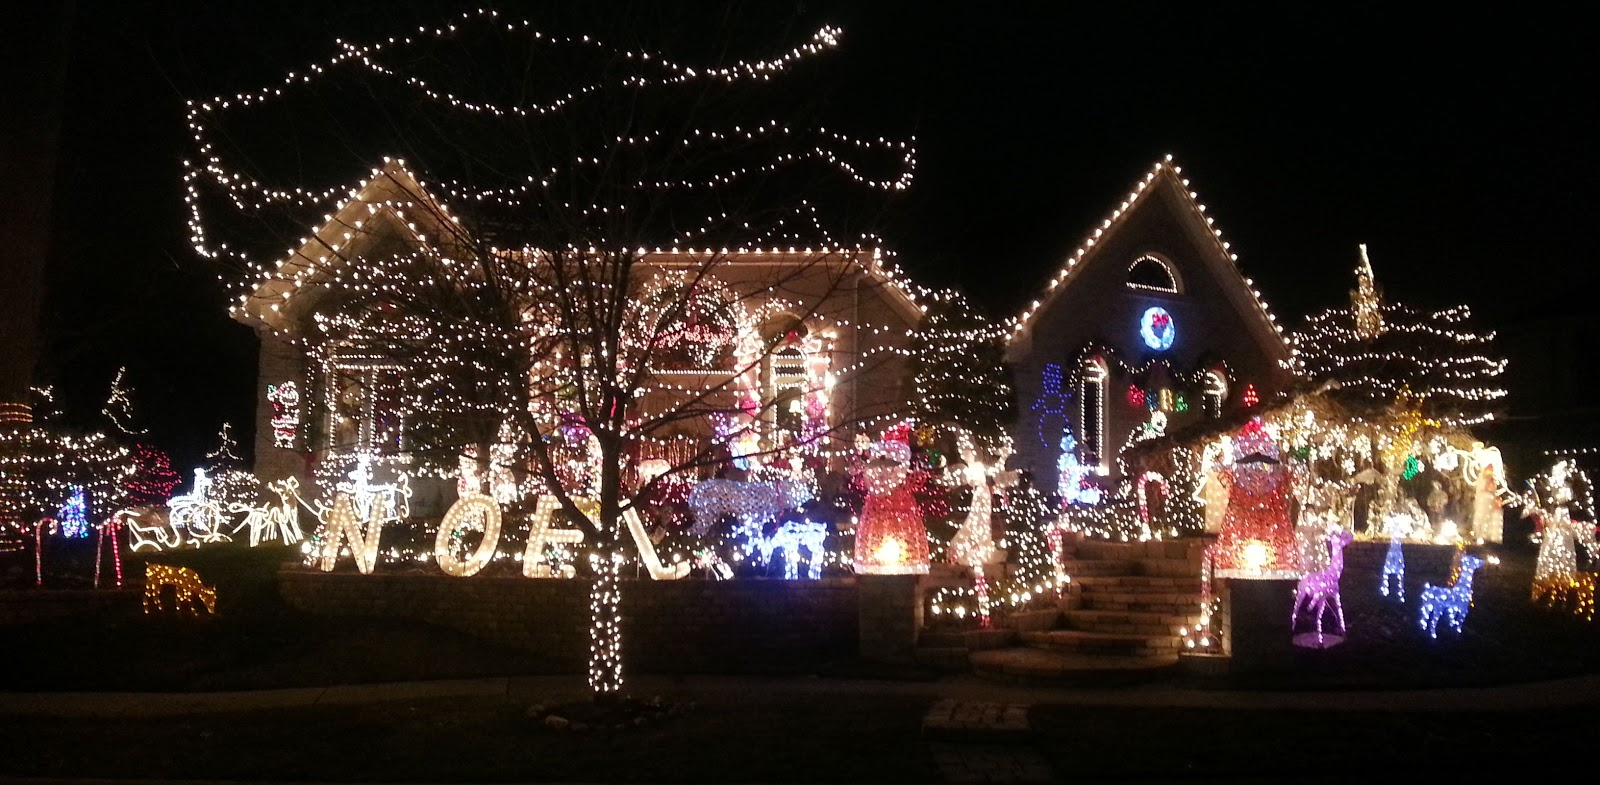 We took a drive by this house in Medinah last evening. The photo does ...